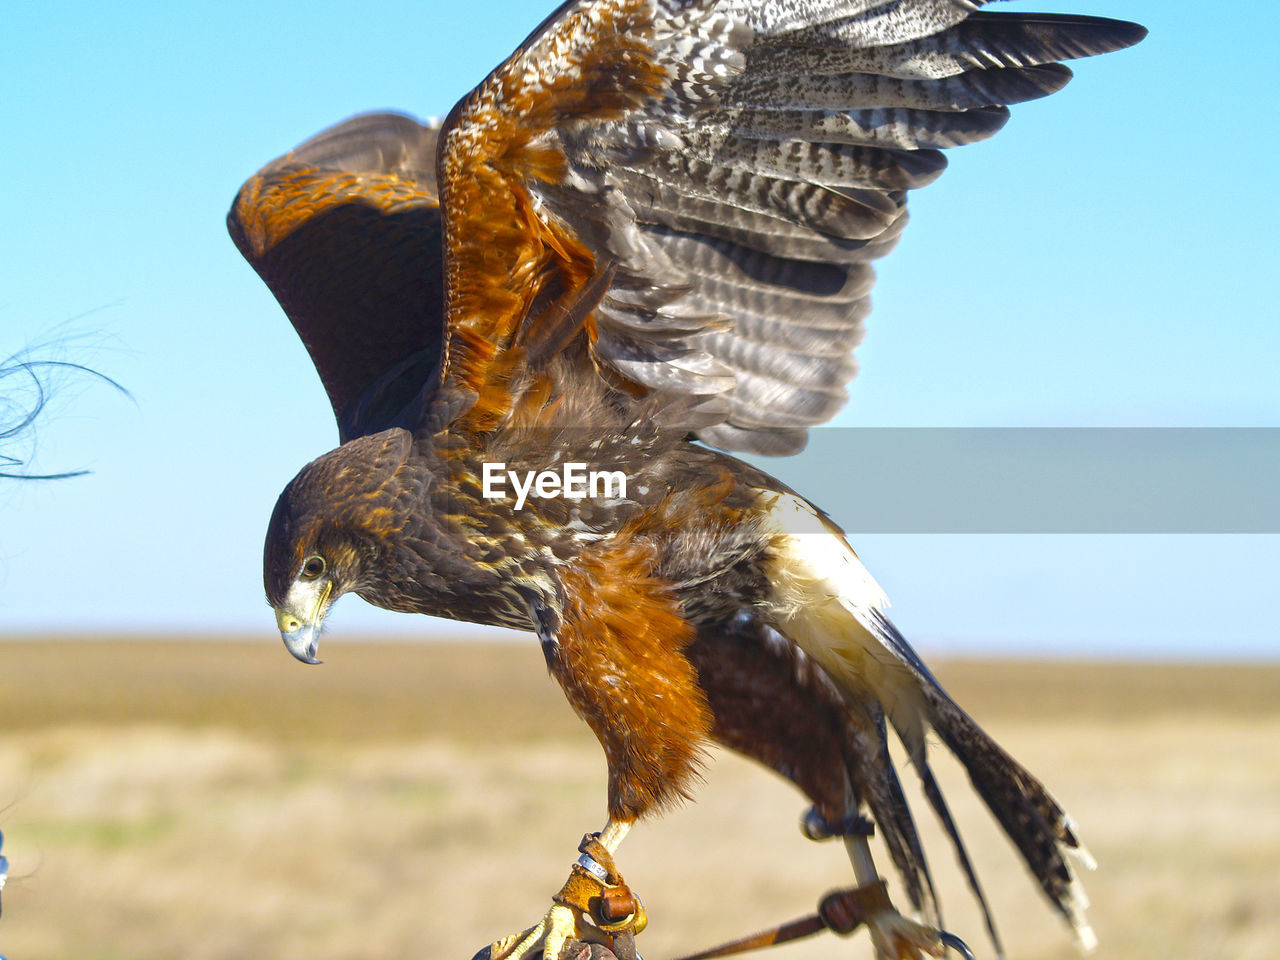 Close-up side view of a bird against clear sky